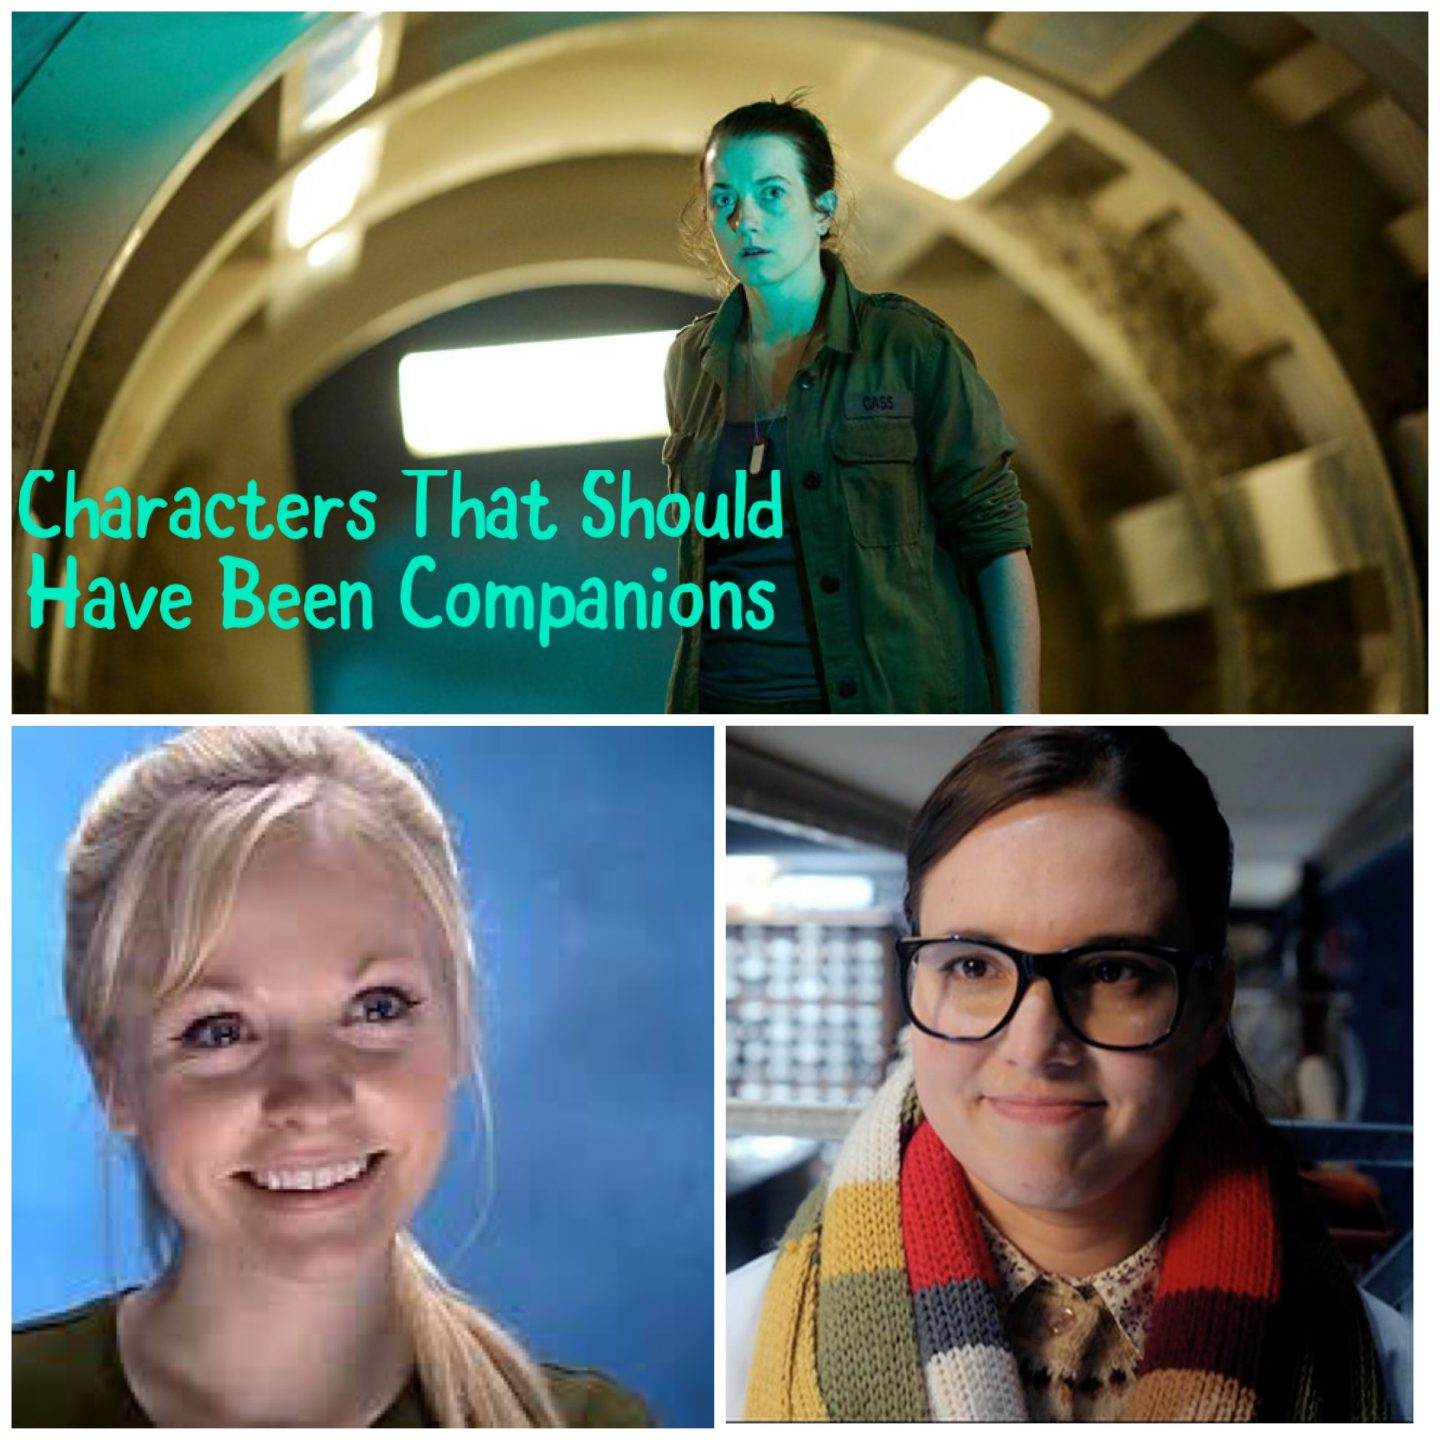 Characters that should have been companions